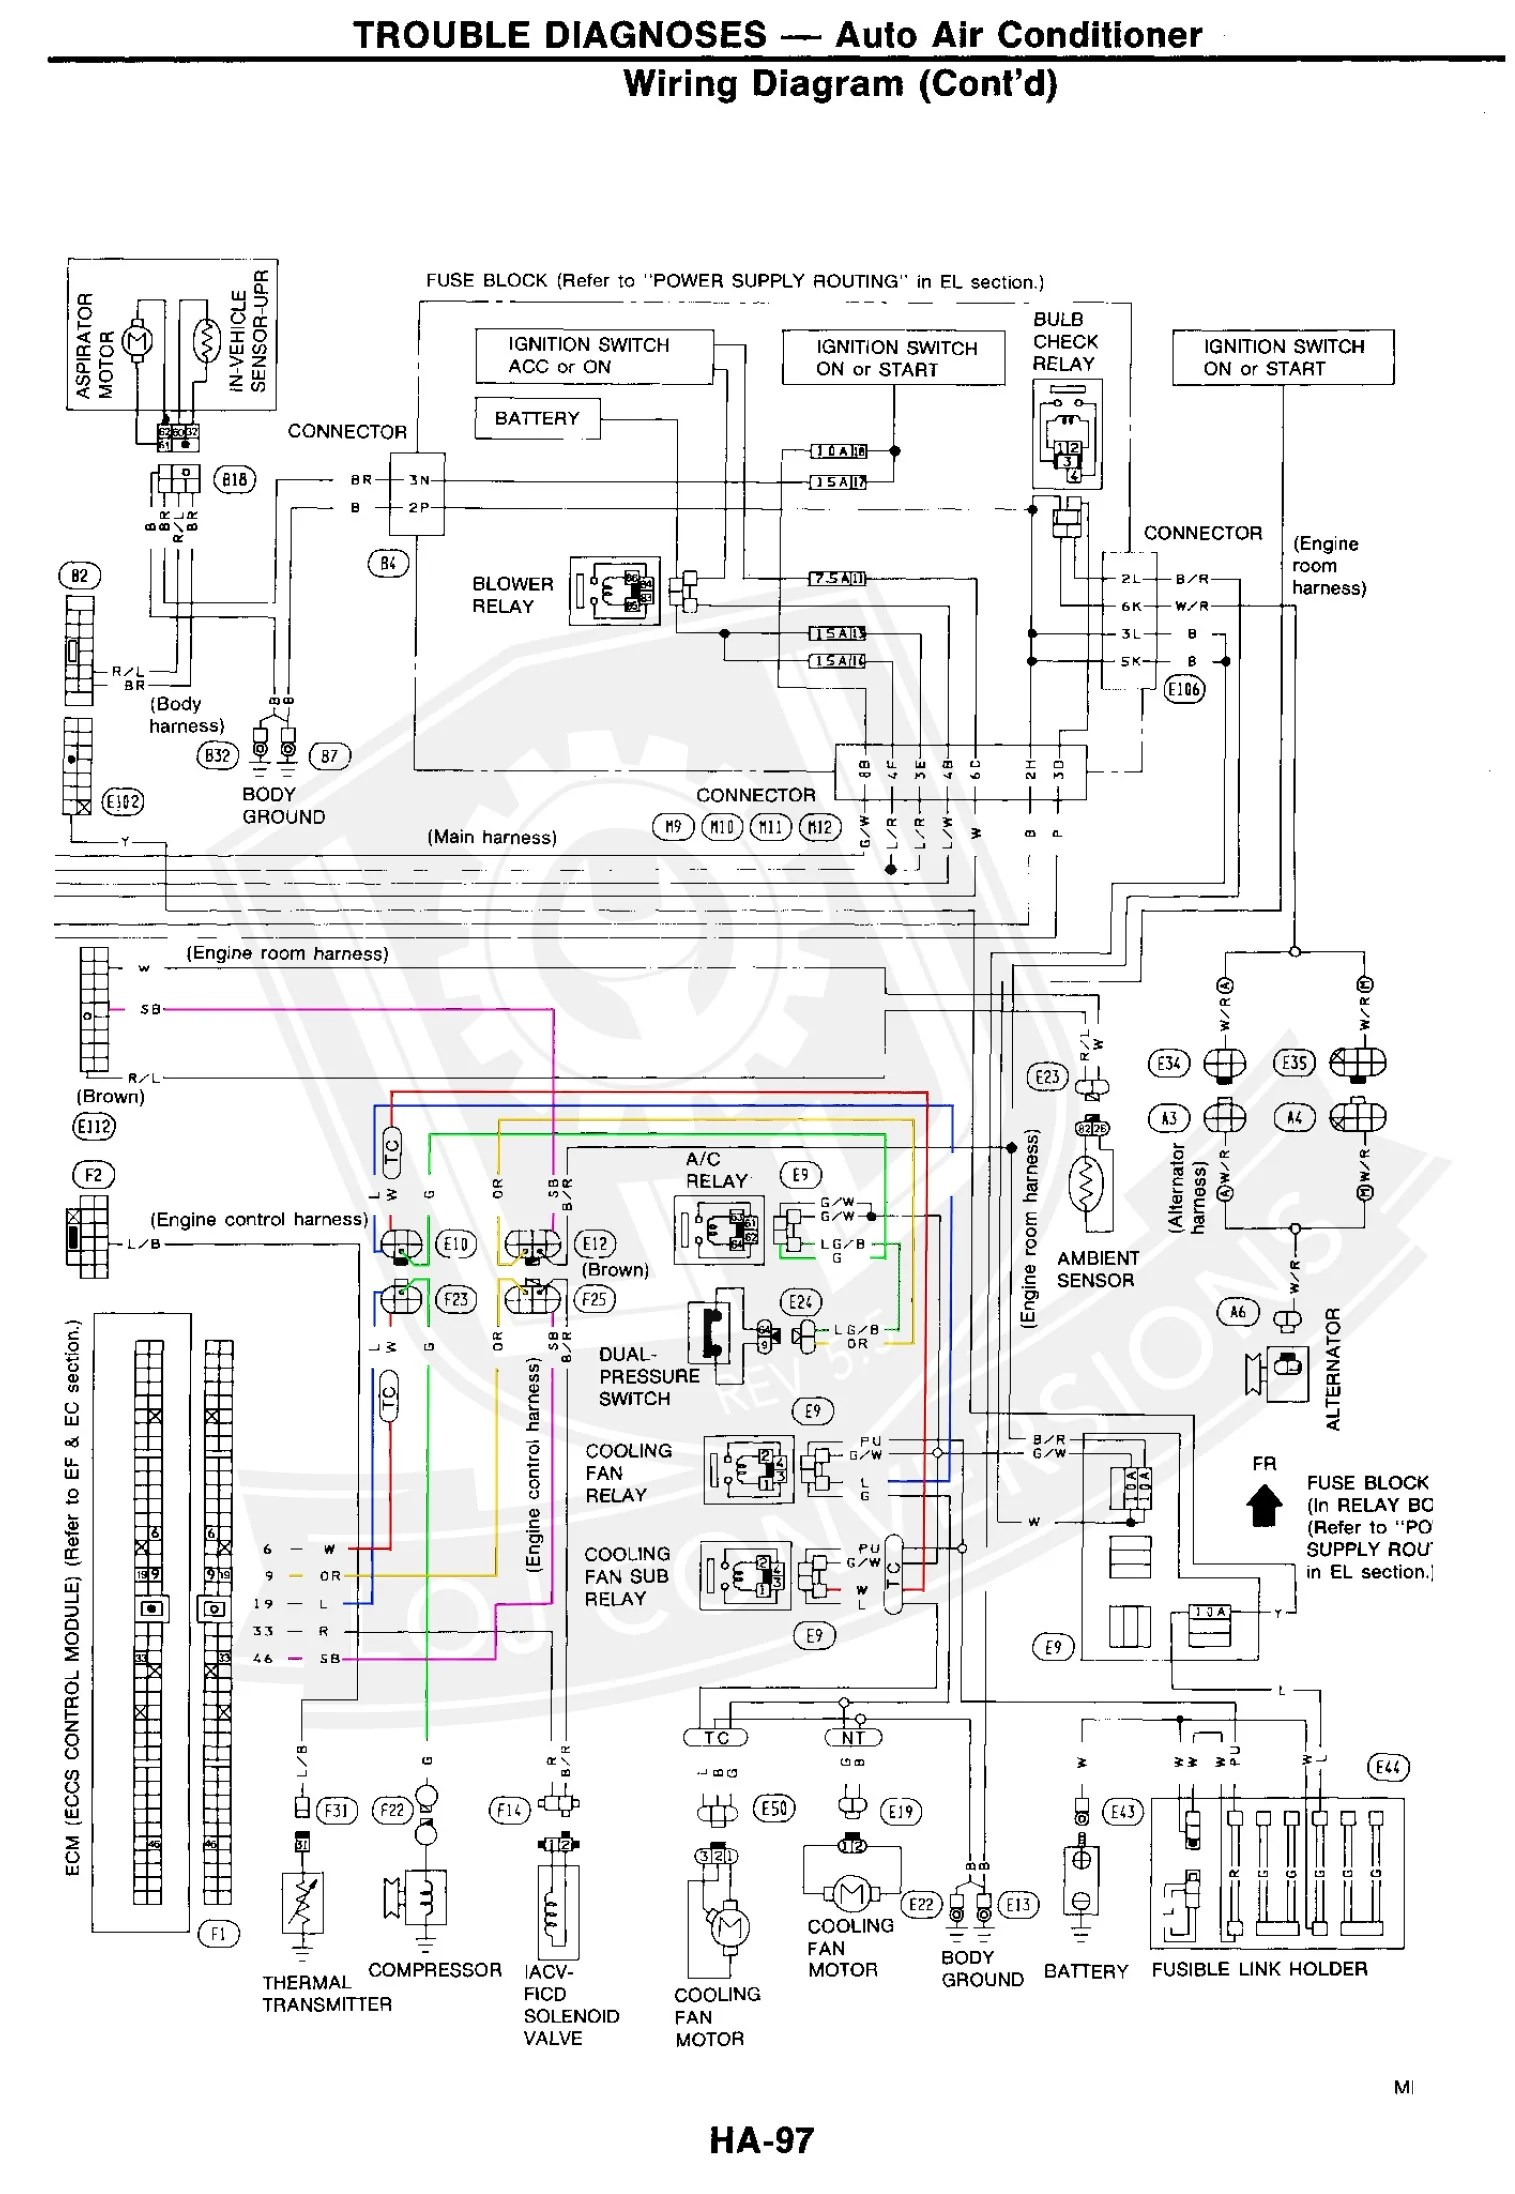 small resolution of 1990 240sx wiring diagram schematic data wiring diagram schema 1990 240sx black 1990 240sx efi diagram